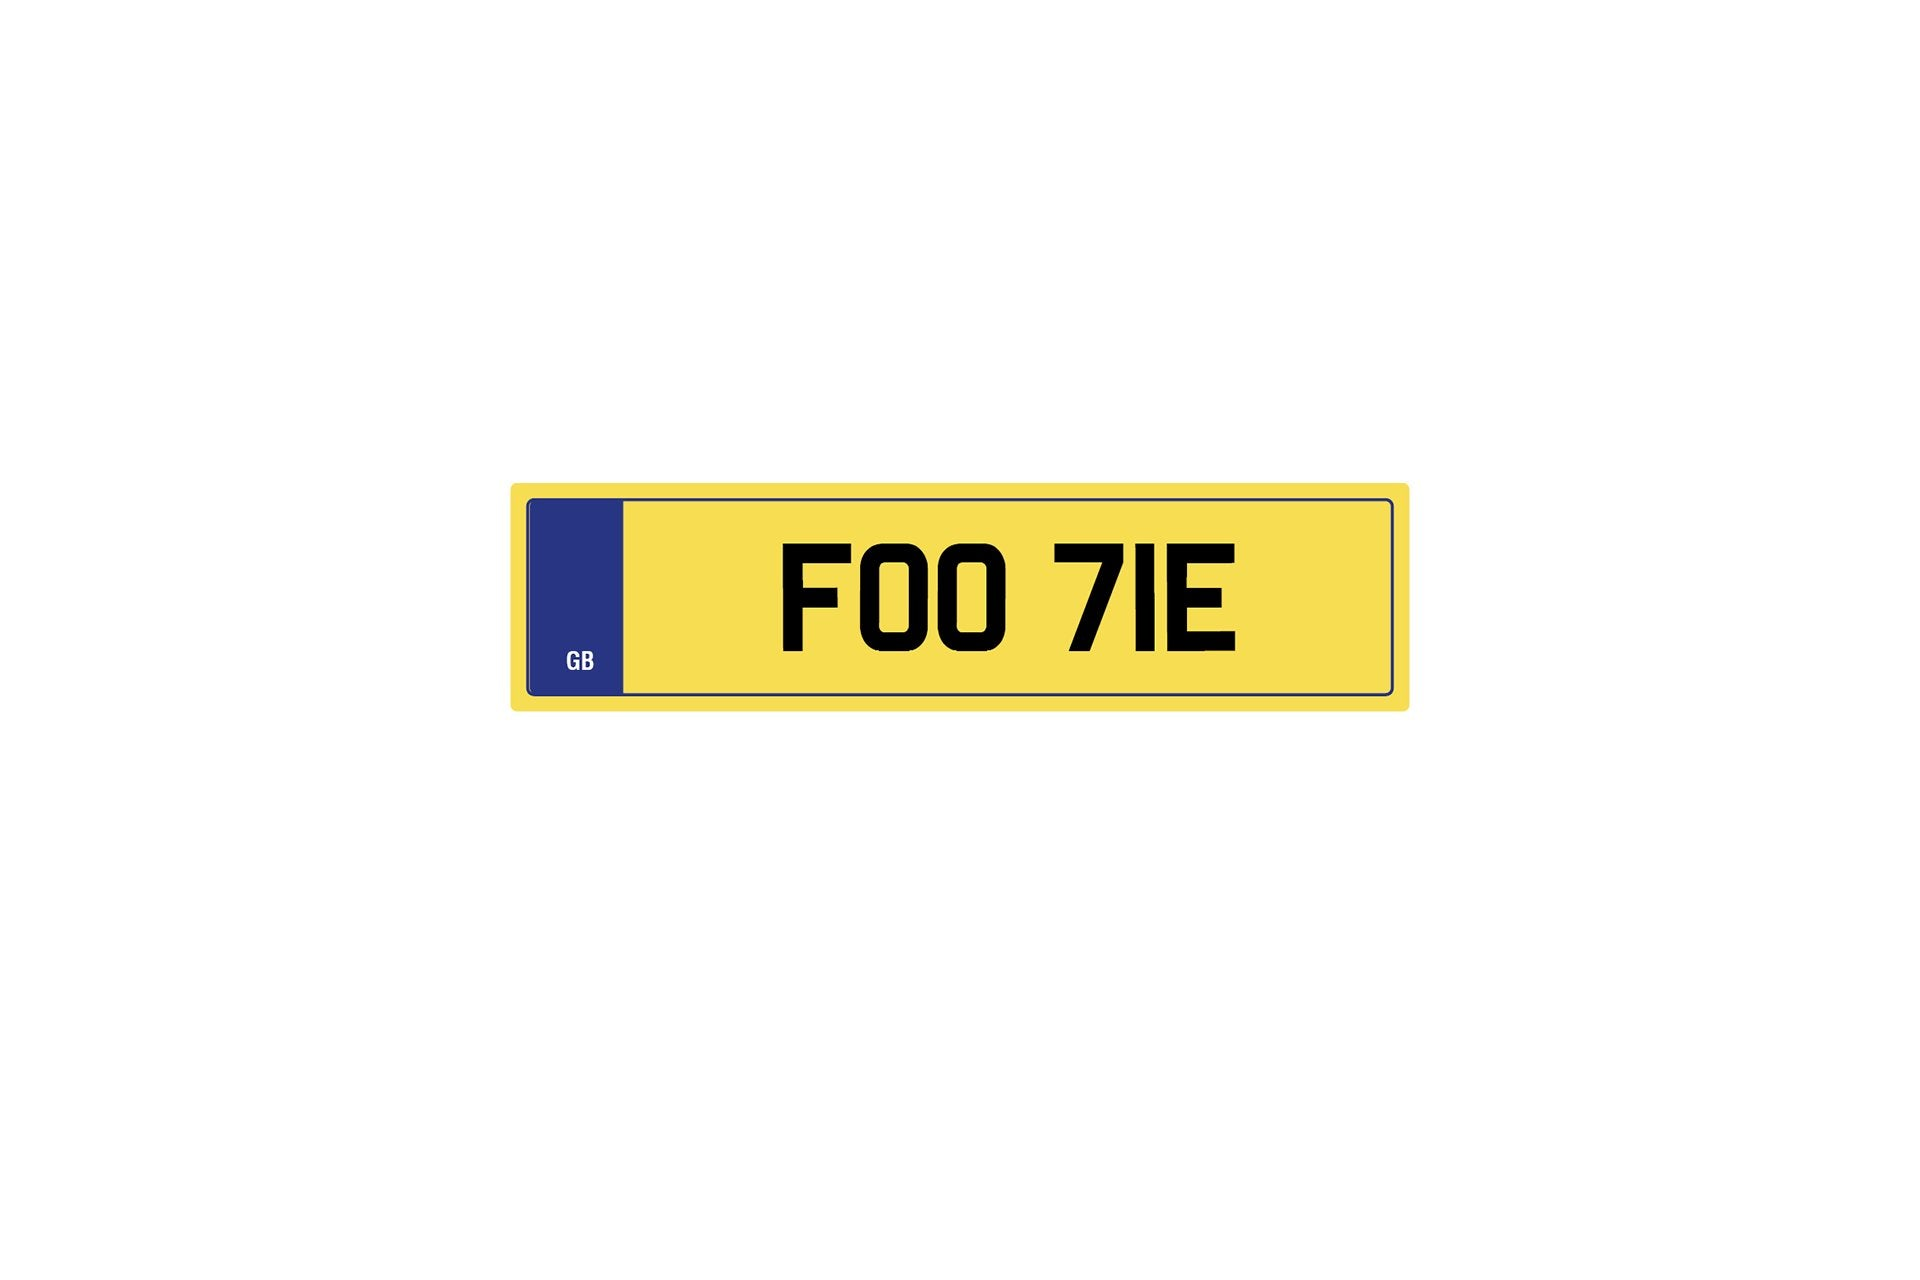 Private Plate F00 7Ie by Kahn - Image 225